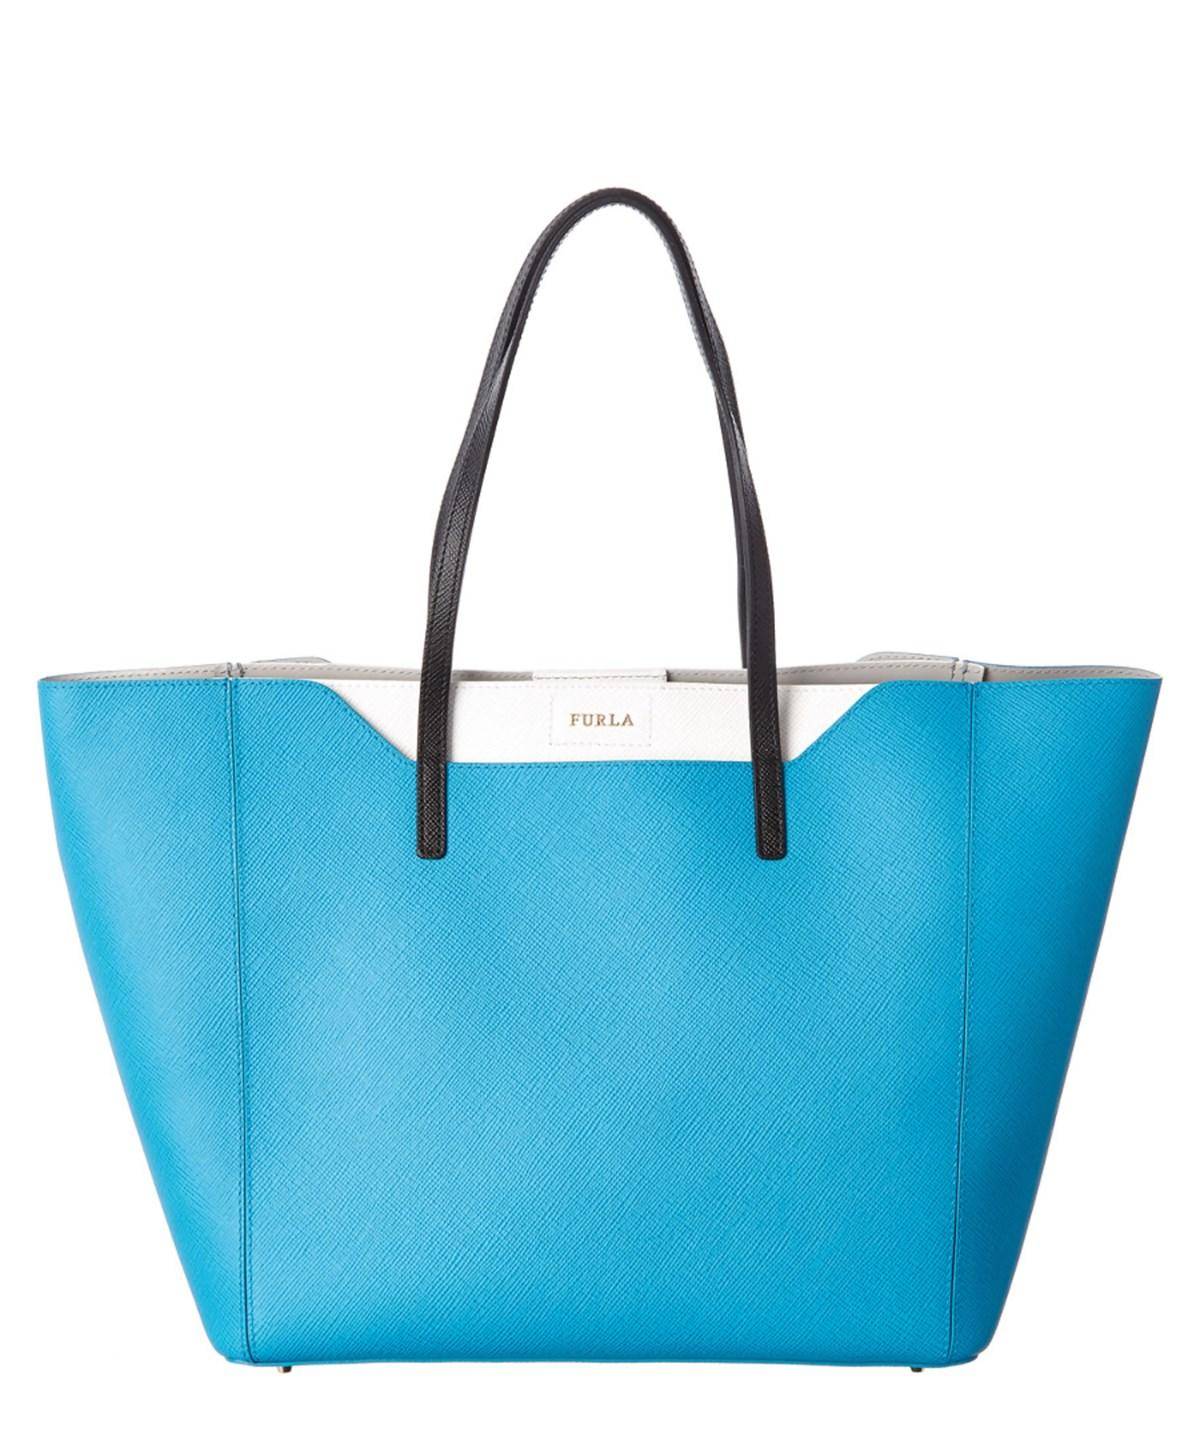 EDEN MEDIUM LEATHER TOTE